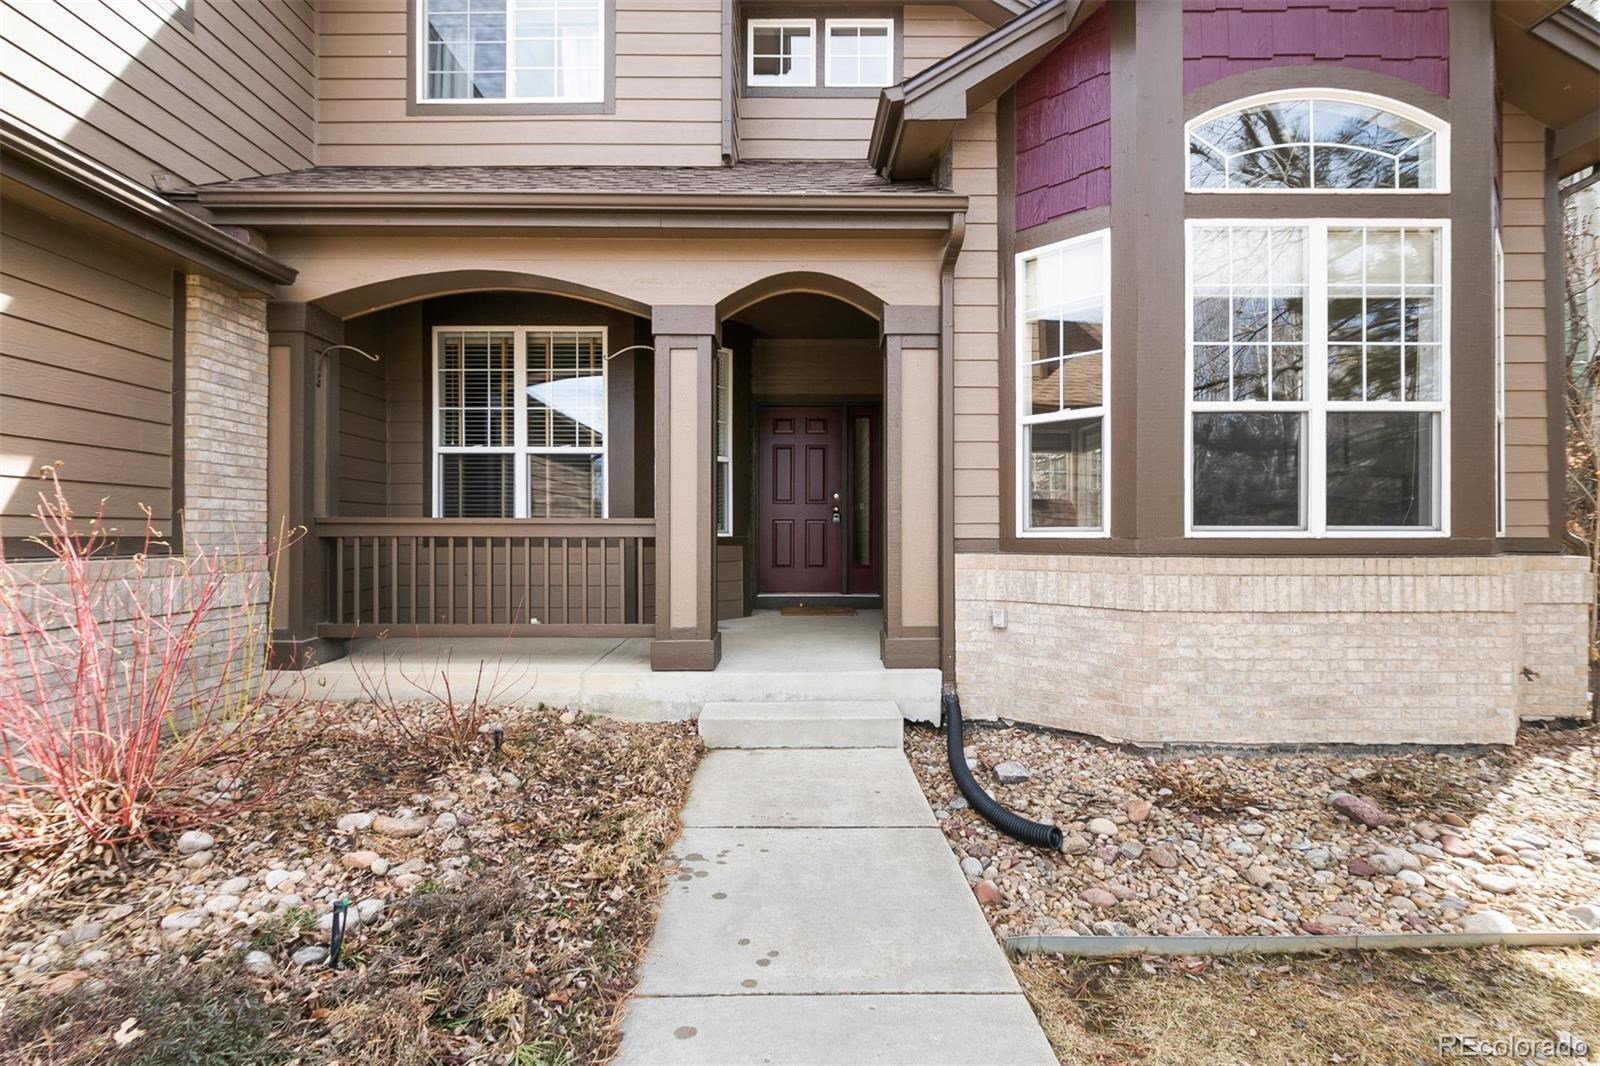 MLS# 3491087 - 4 - 2300 Creekside Drive, Longmont, CO 80504